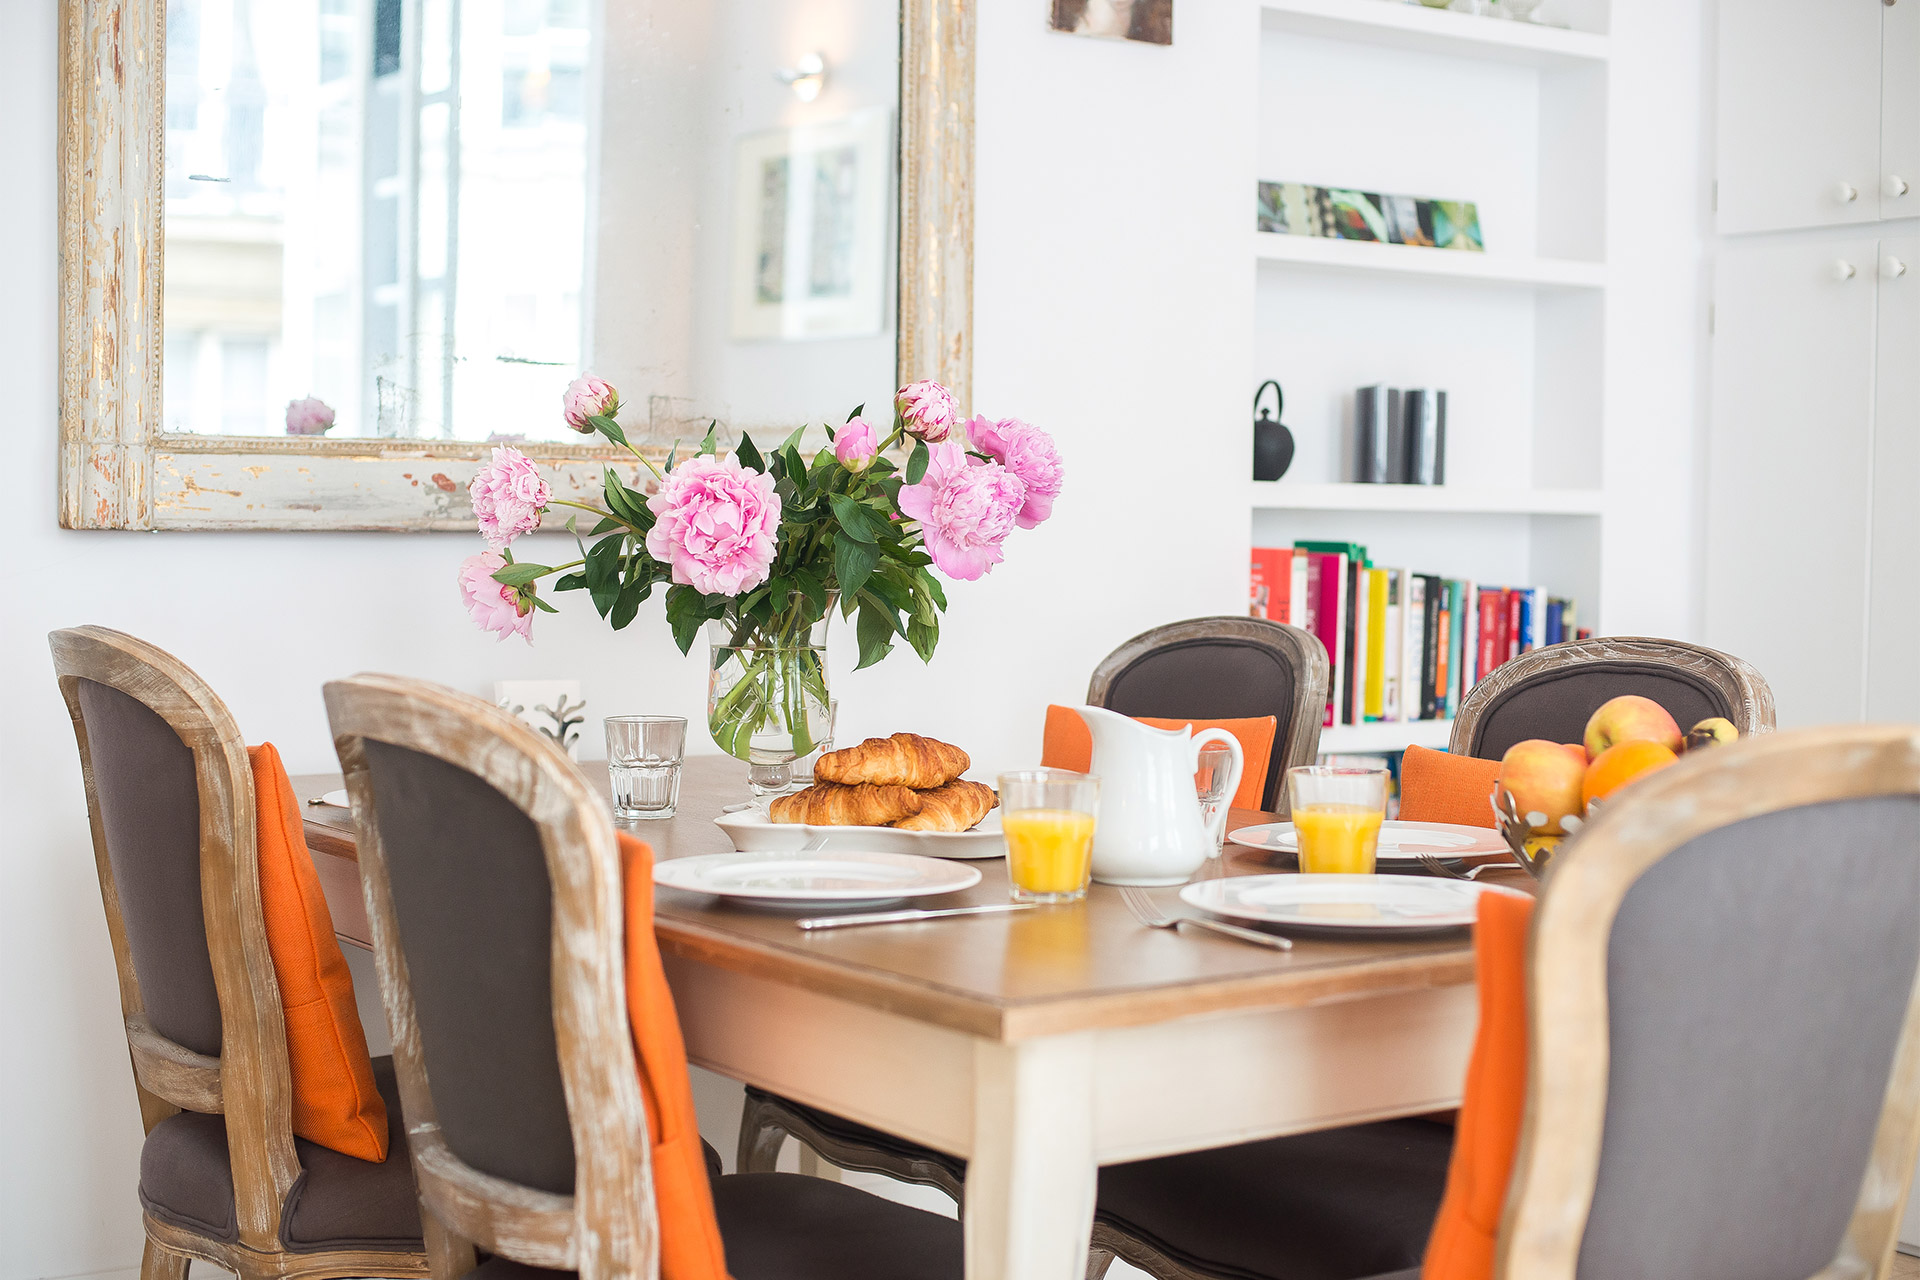 Dining table comfortably seats 6 people in the Bel-Air vacation rental offered by Paris Perfect